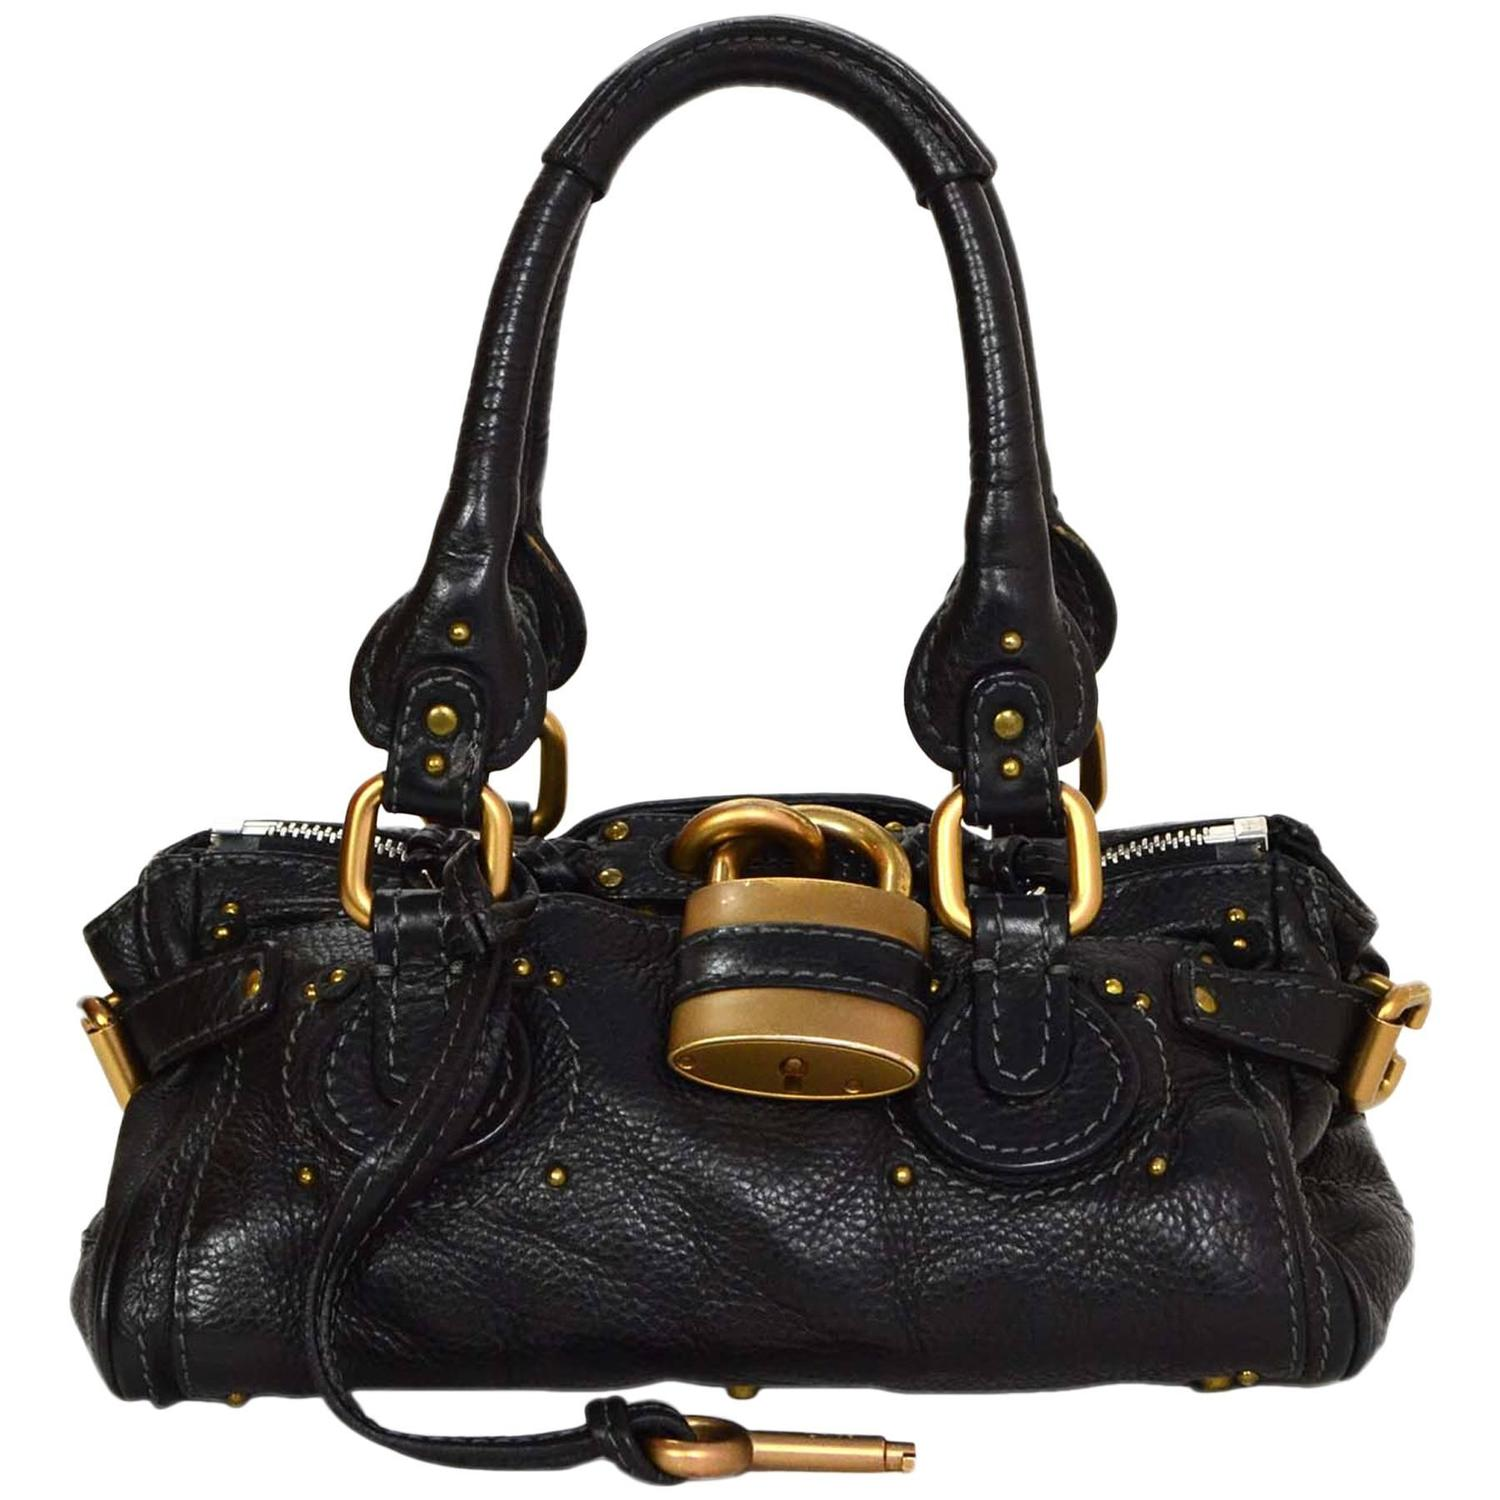 chloe silverado leather handle bag